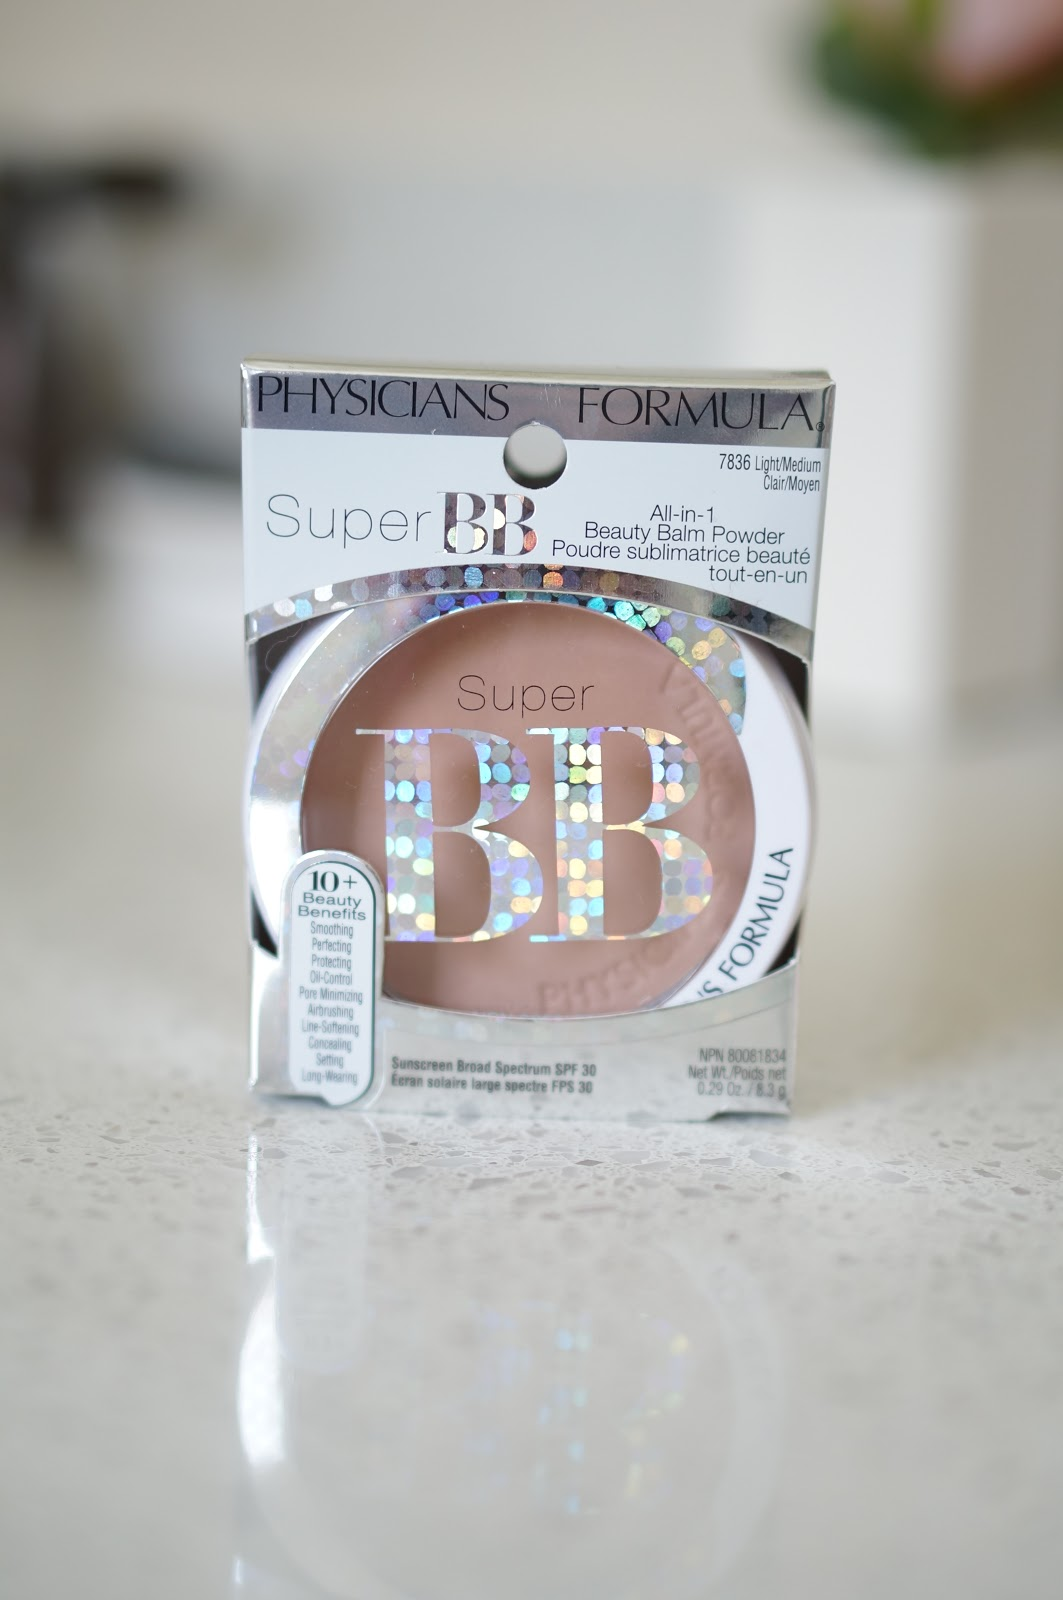 Popular North Carolina style blogger Rebecca Lately shares her review of the Physicians Formula BB Powder. Click here to read!